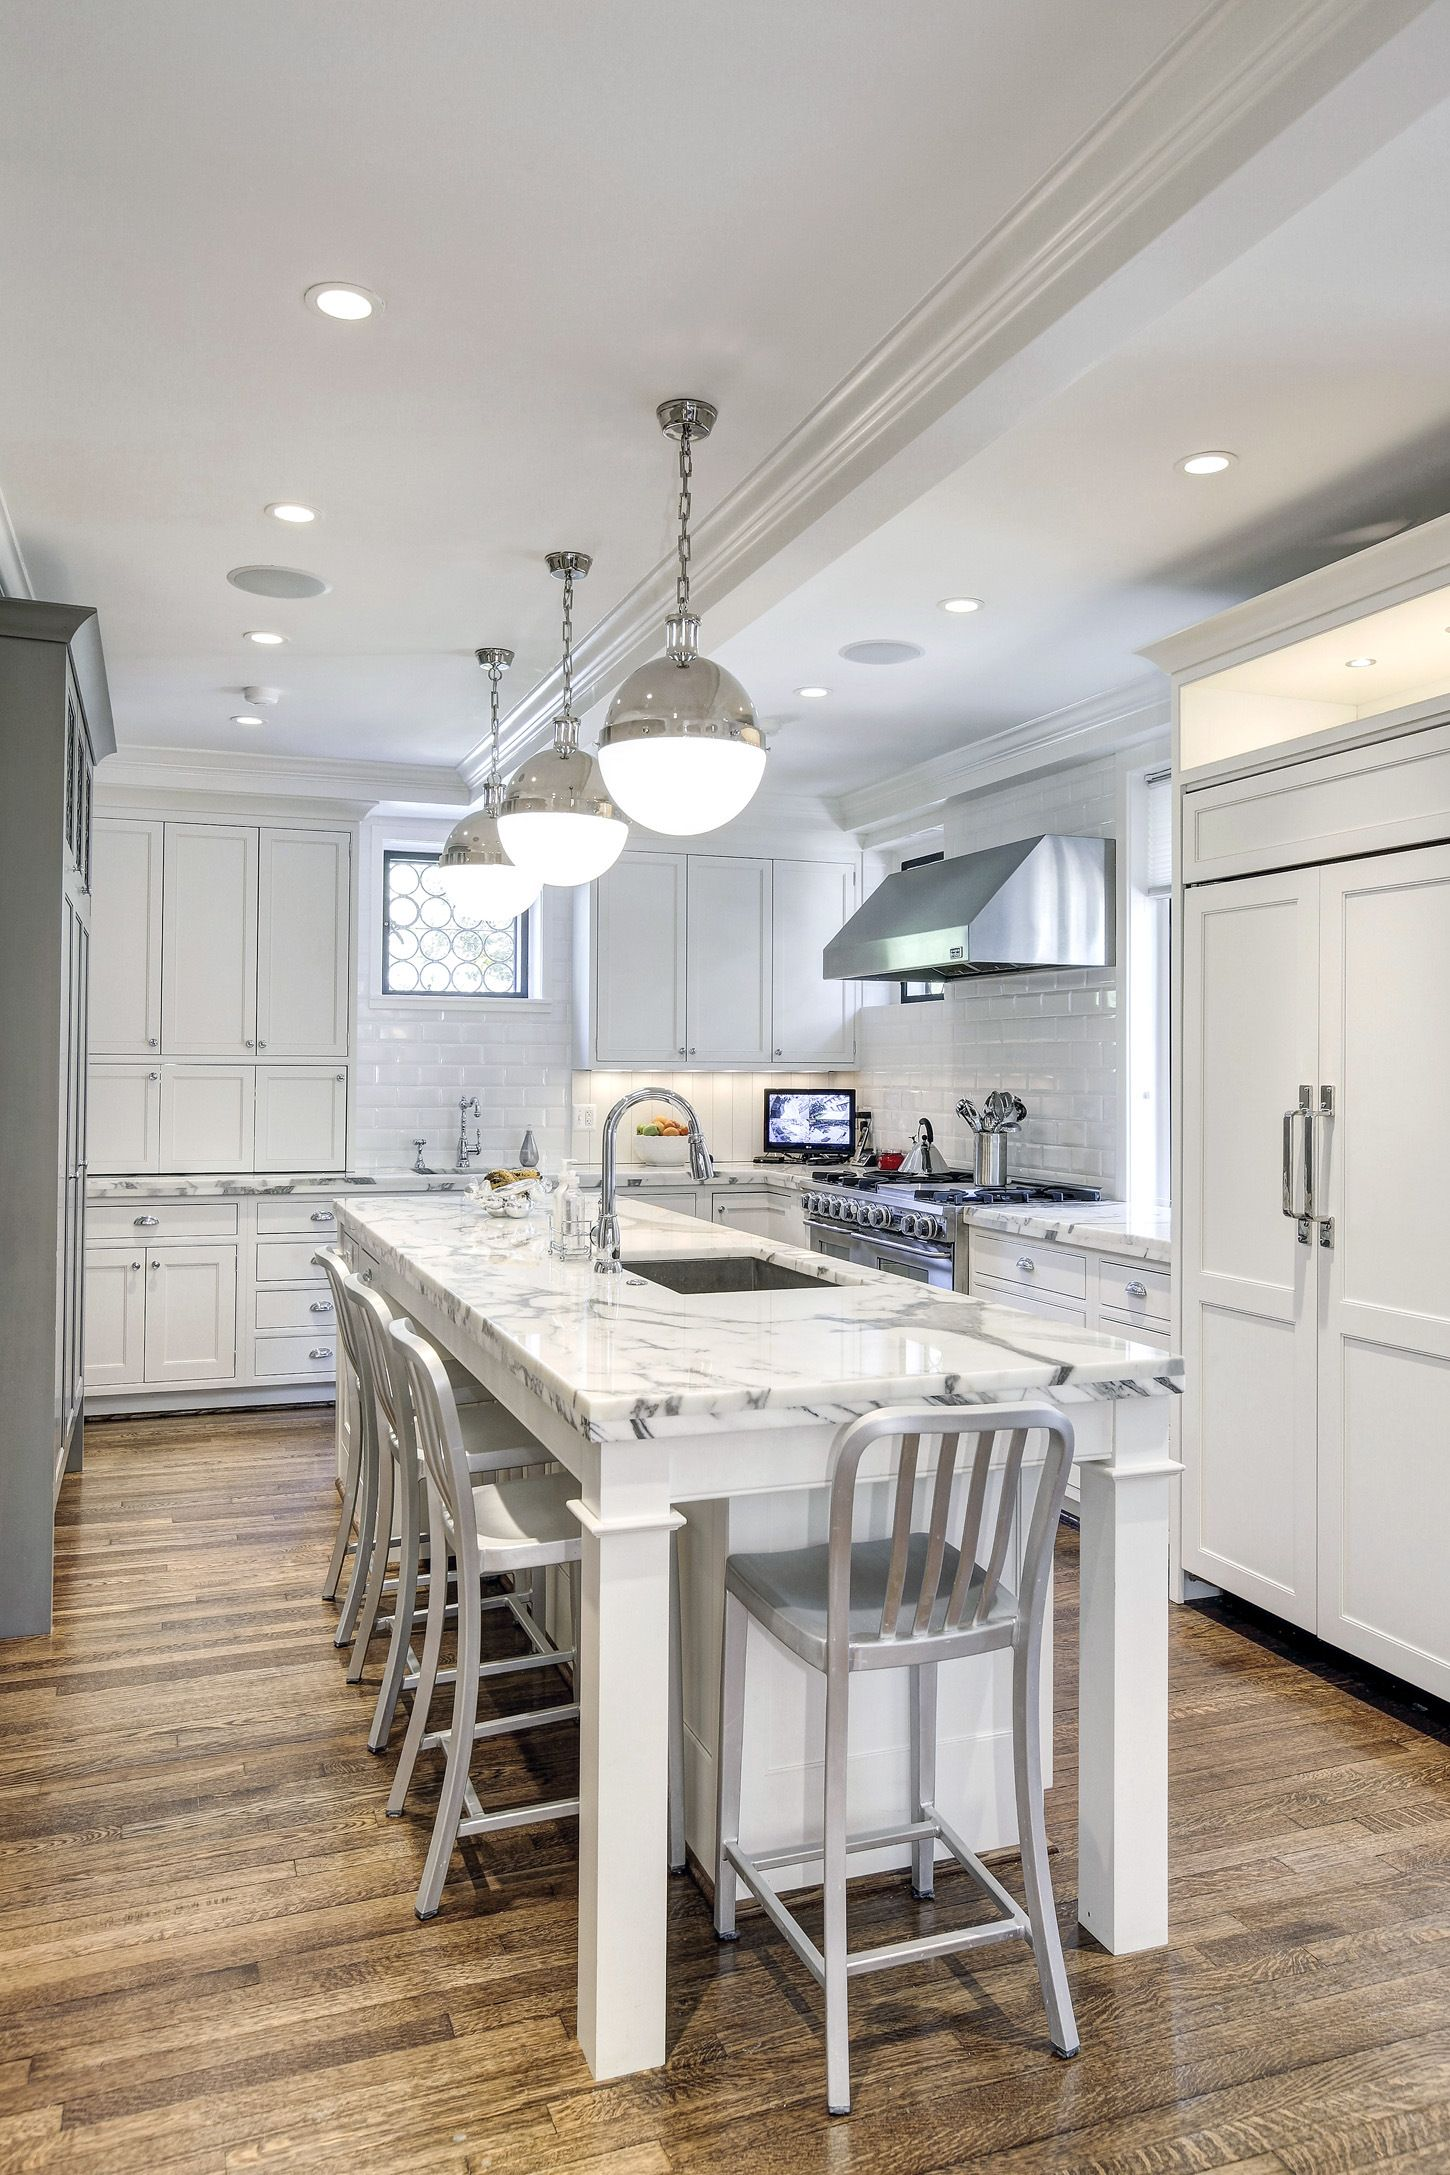 Barack Obama Michelle Obama Buy New Home In Washington Dc See Photos White House Bedroom Home Inside The White House The kitchen in the white house